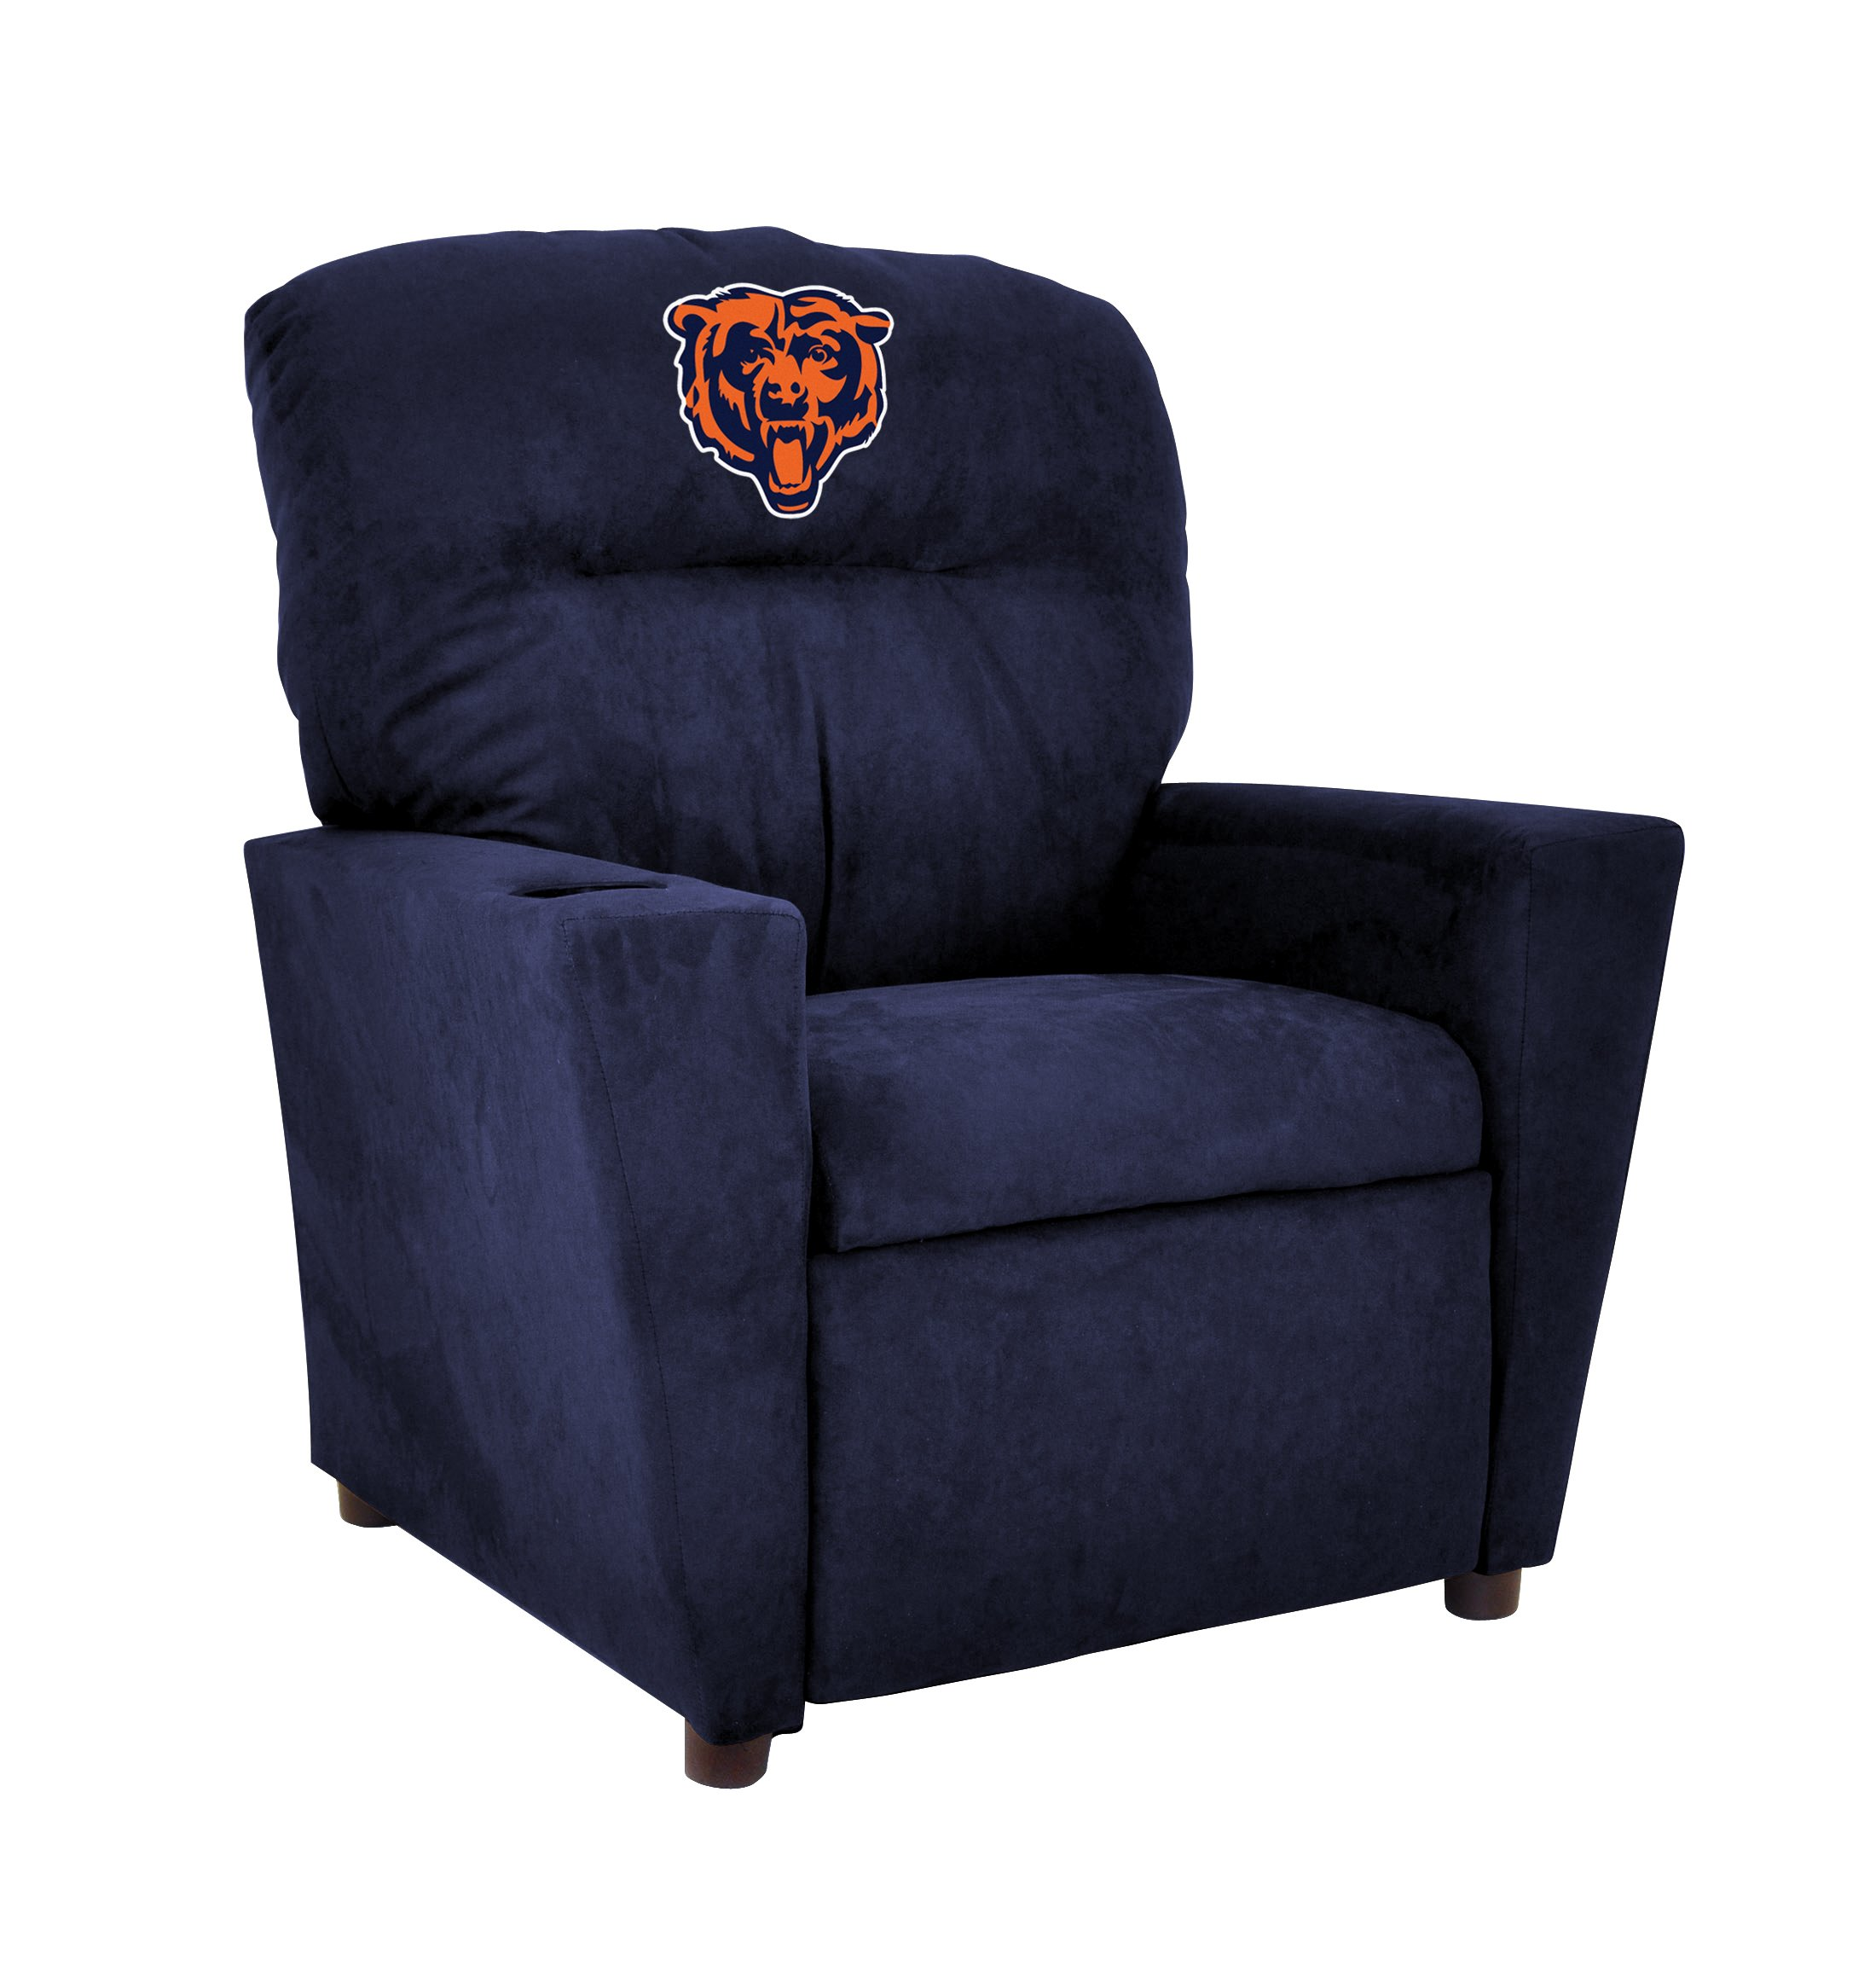 Imperial Officially Licensed NFL Furniture: Youth Microfiber Recliner, Chicago Bears